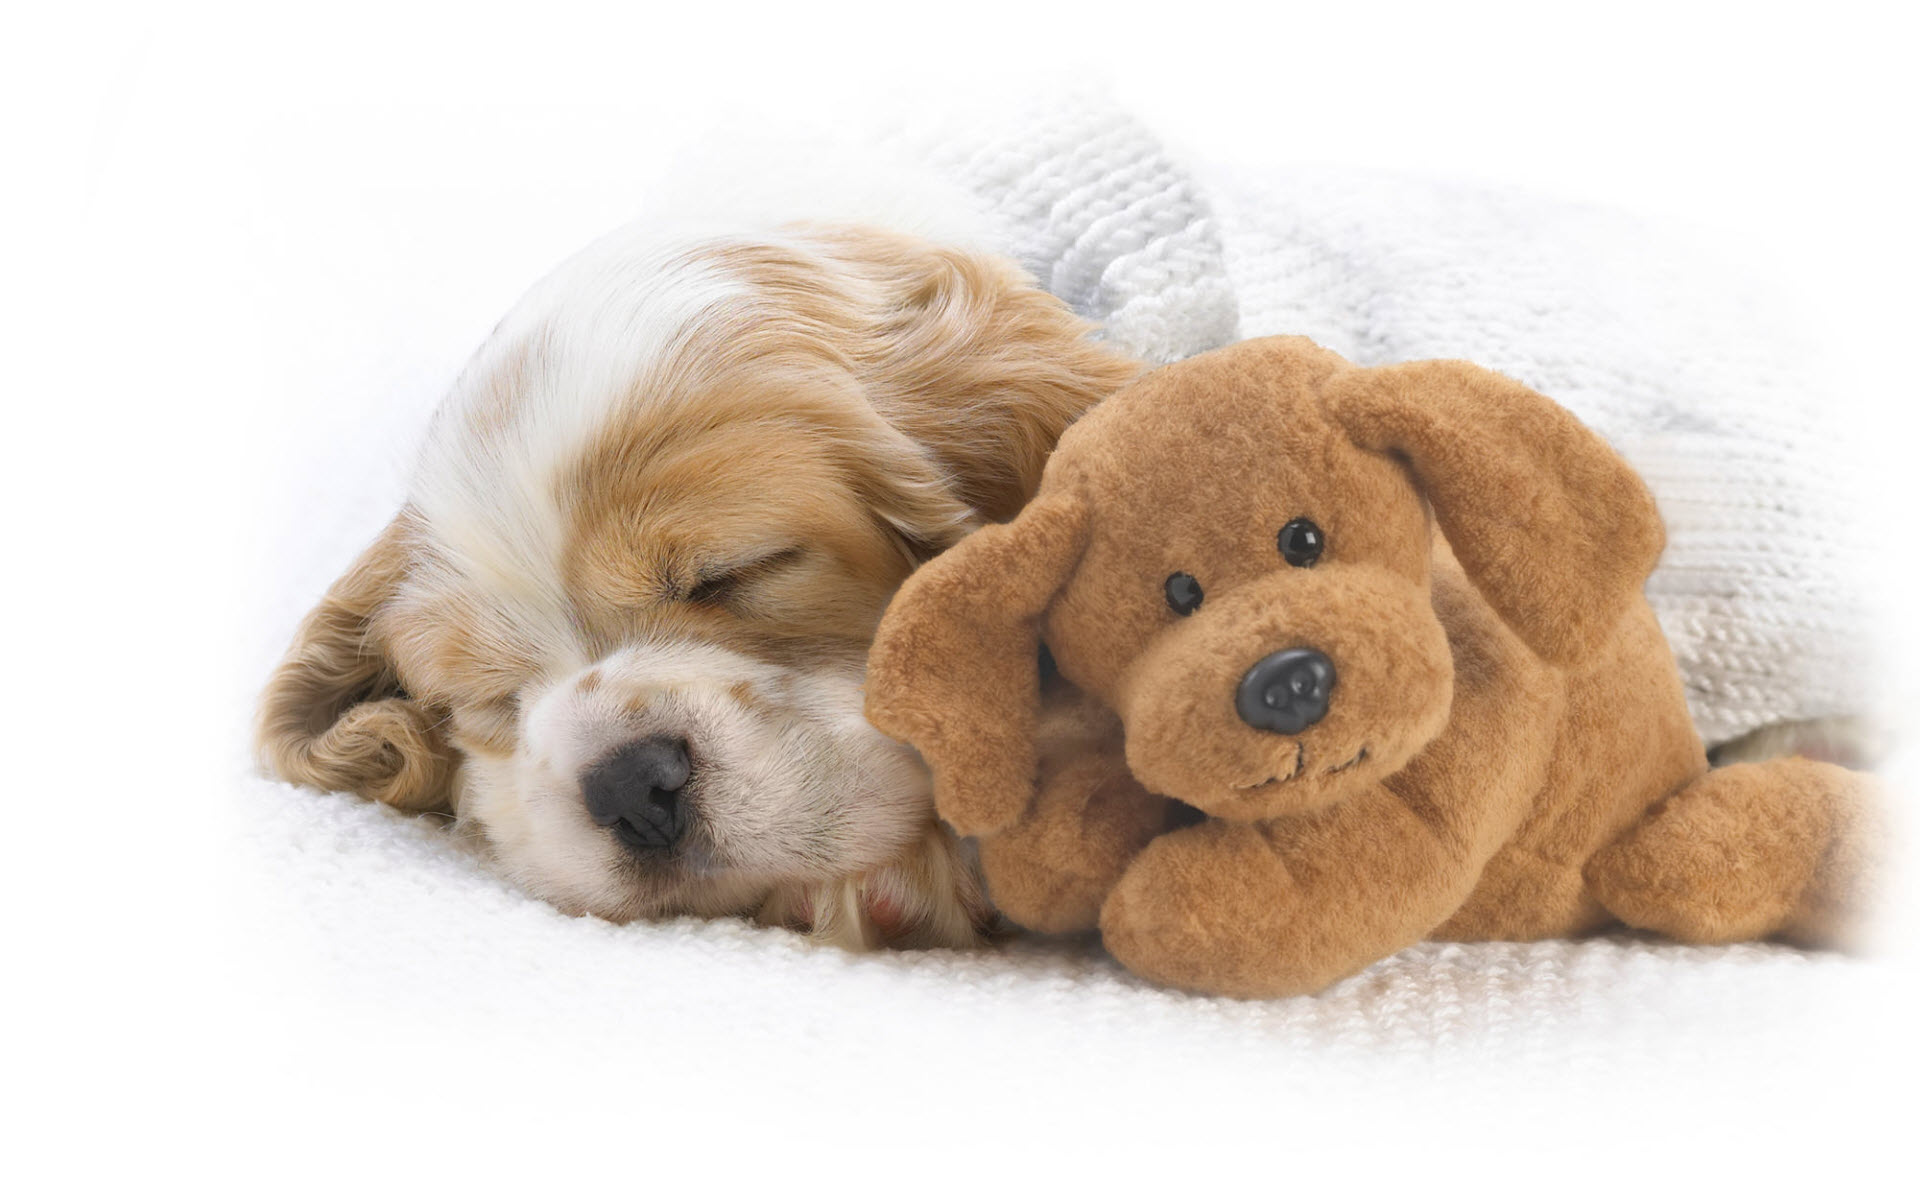 Cute Wallpapers Wallpaper Animals Wallpapers Puppy Sleeping Cute